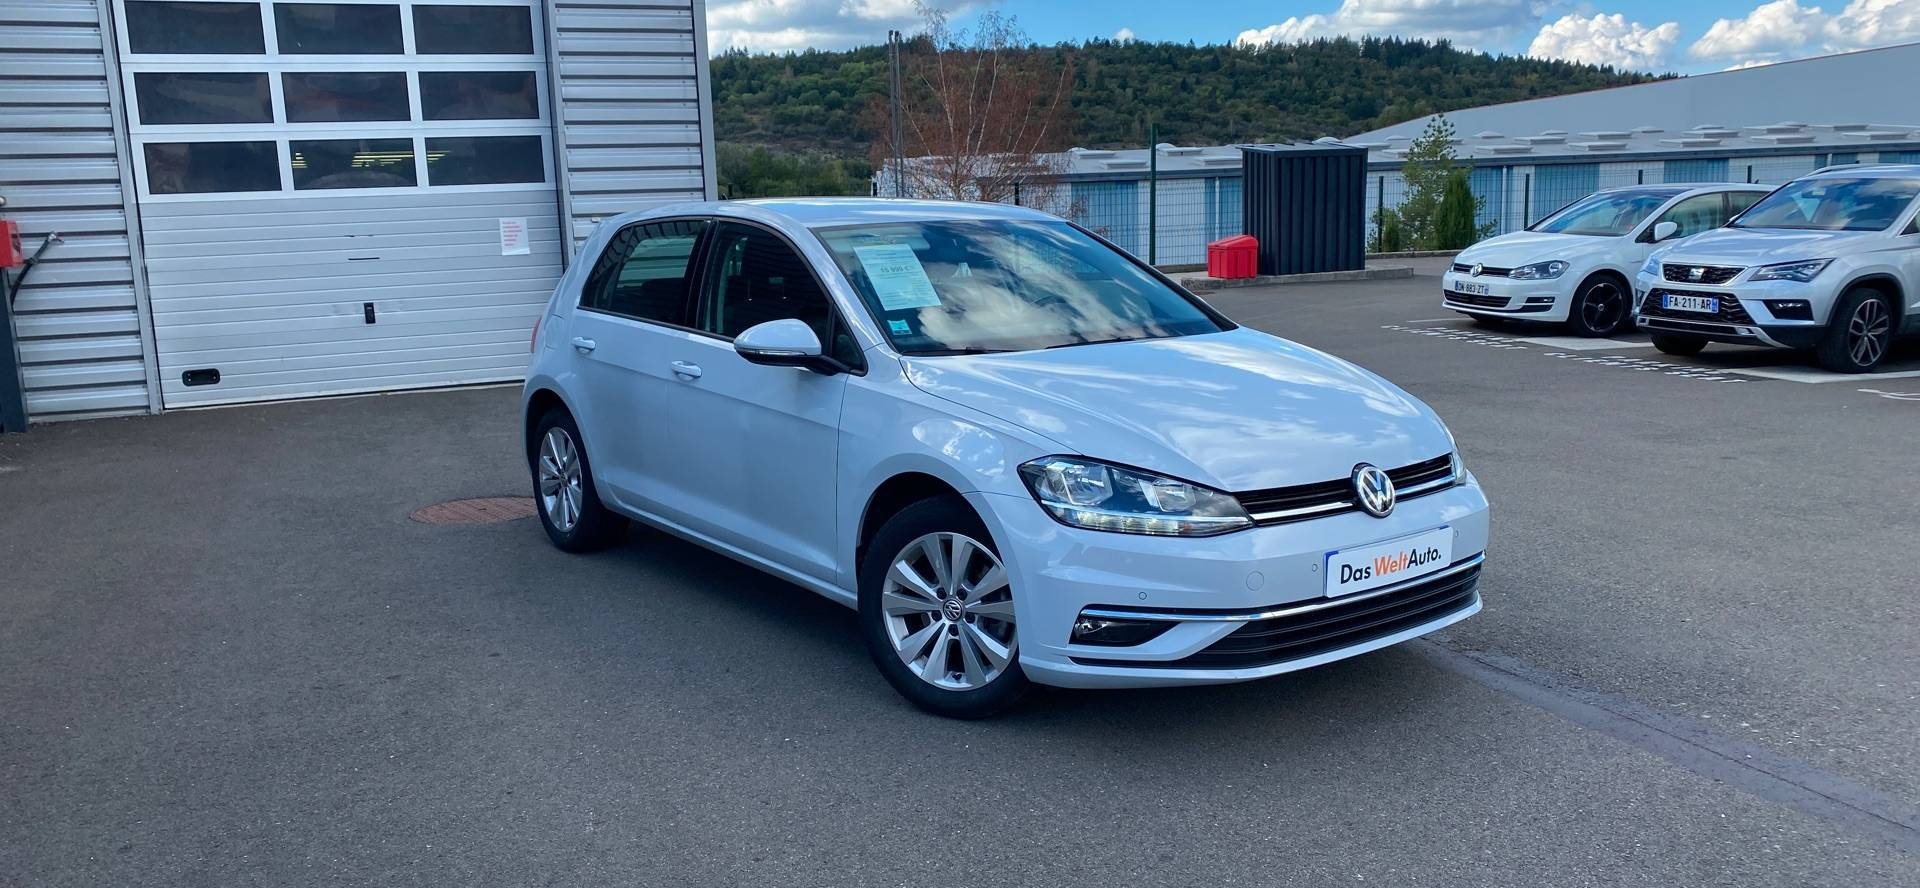 1 - Golf 1.4 TSI 125 BlueMotion Technology